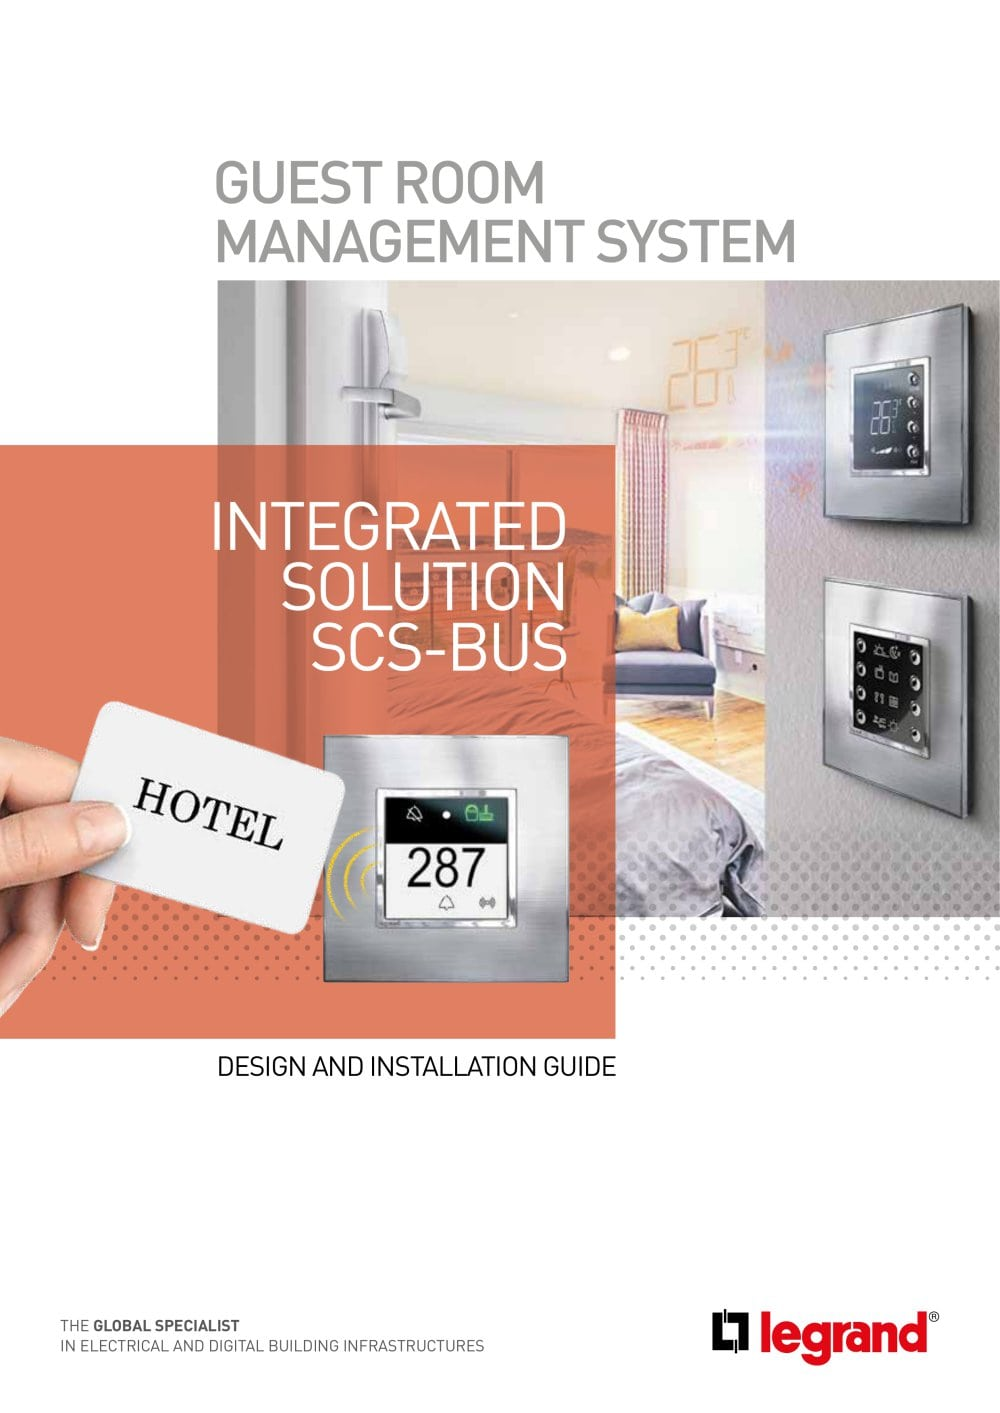 Scs Bus Hotel Catalogo Ad Exlg Od15sag Gb Bticino Pdf Catalogues A Wiring Diagram Le Grand 1 148 Pages